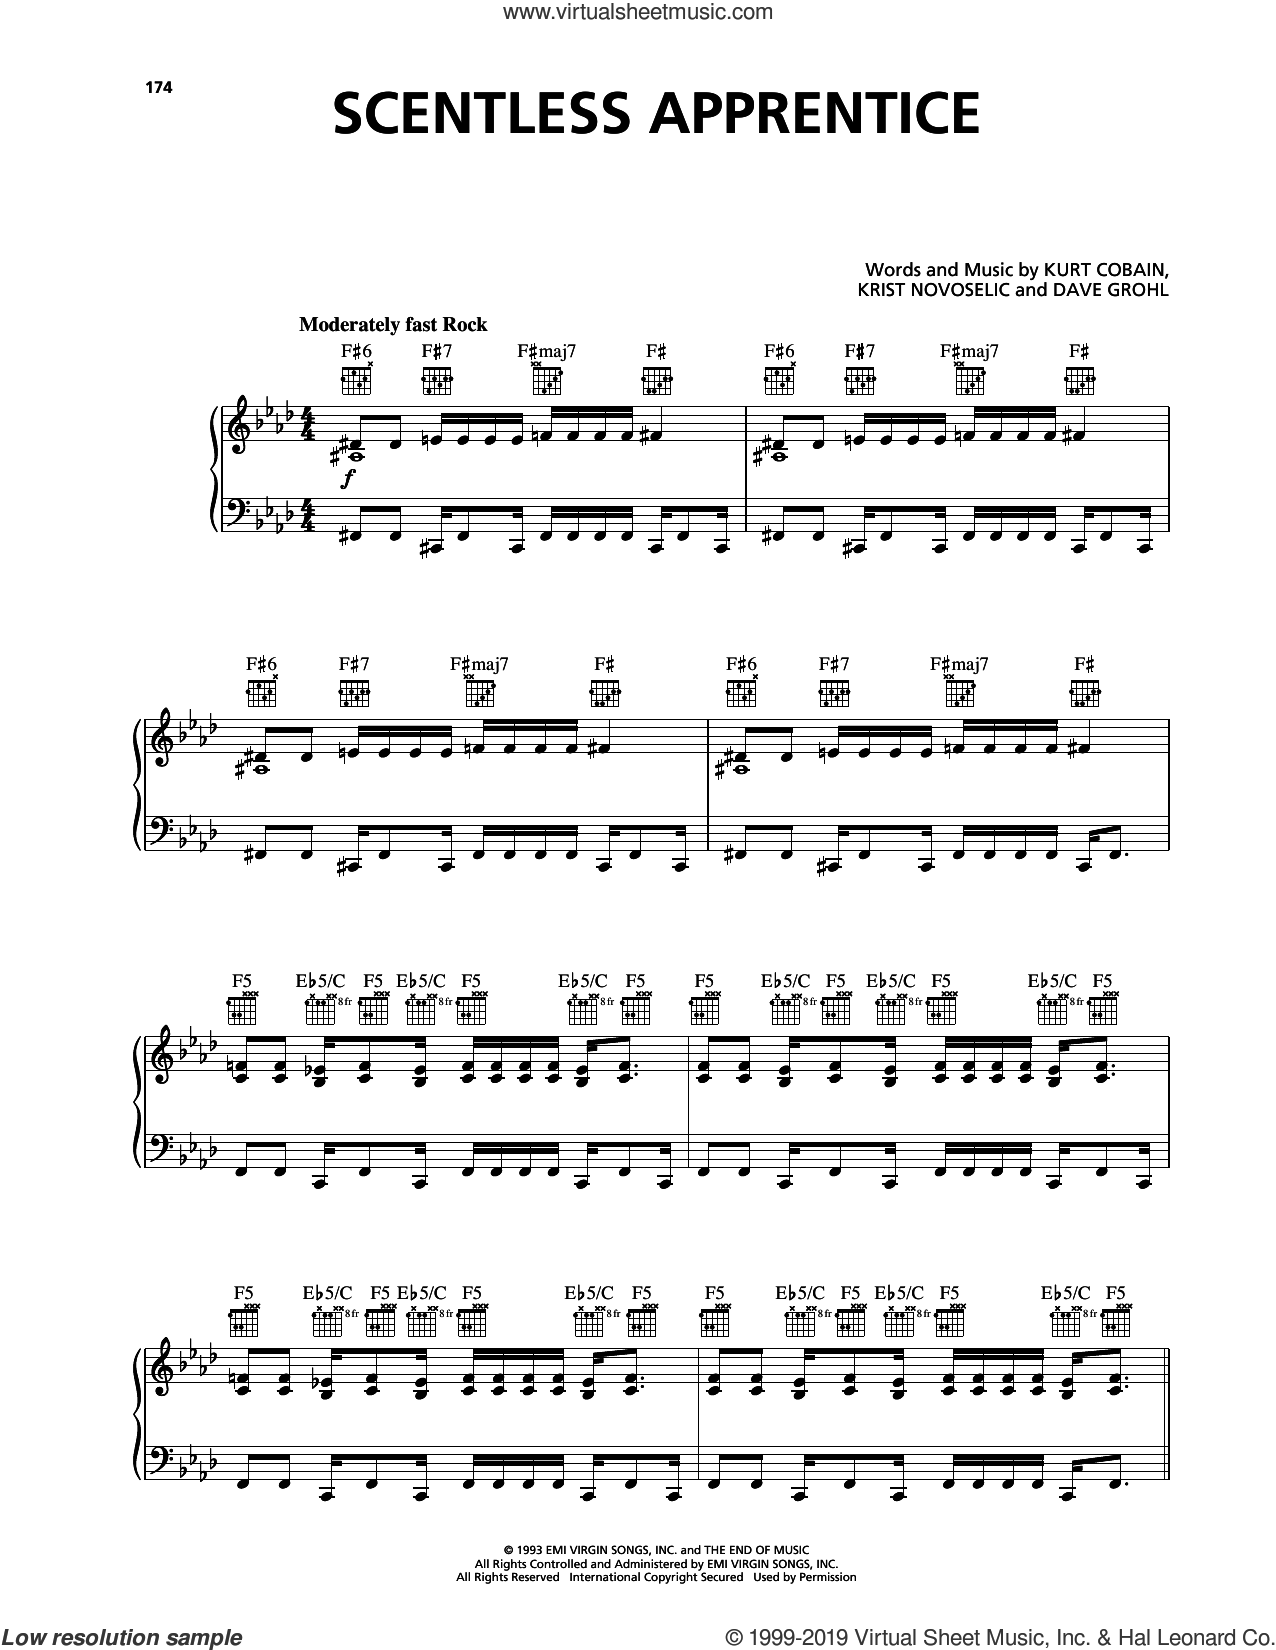 Scentless Apprentice sheet music for voice, piano or guitar by Nirvana, Dave Grohl, Krist Novoselic and Kurt Cobain, intermediate skill level